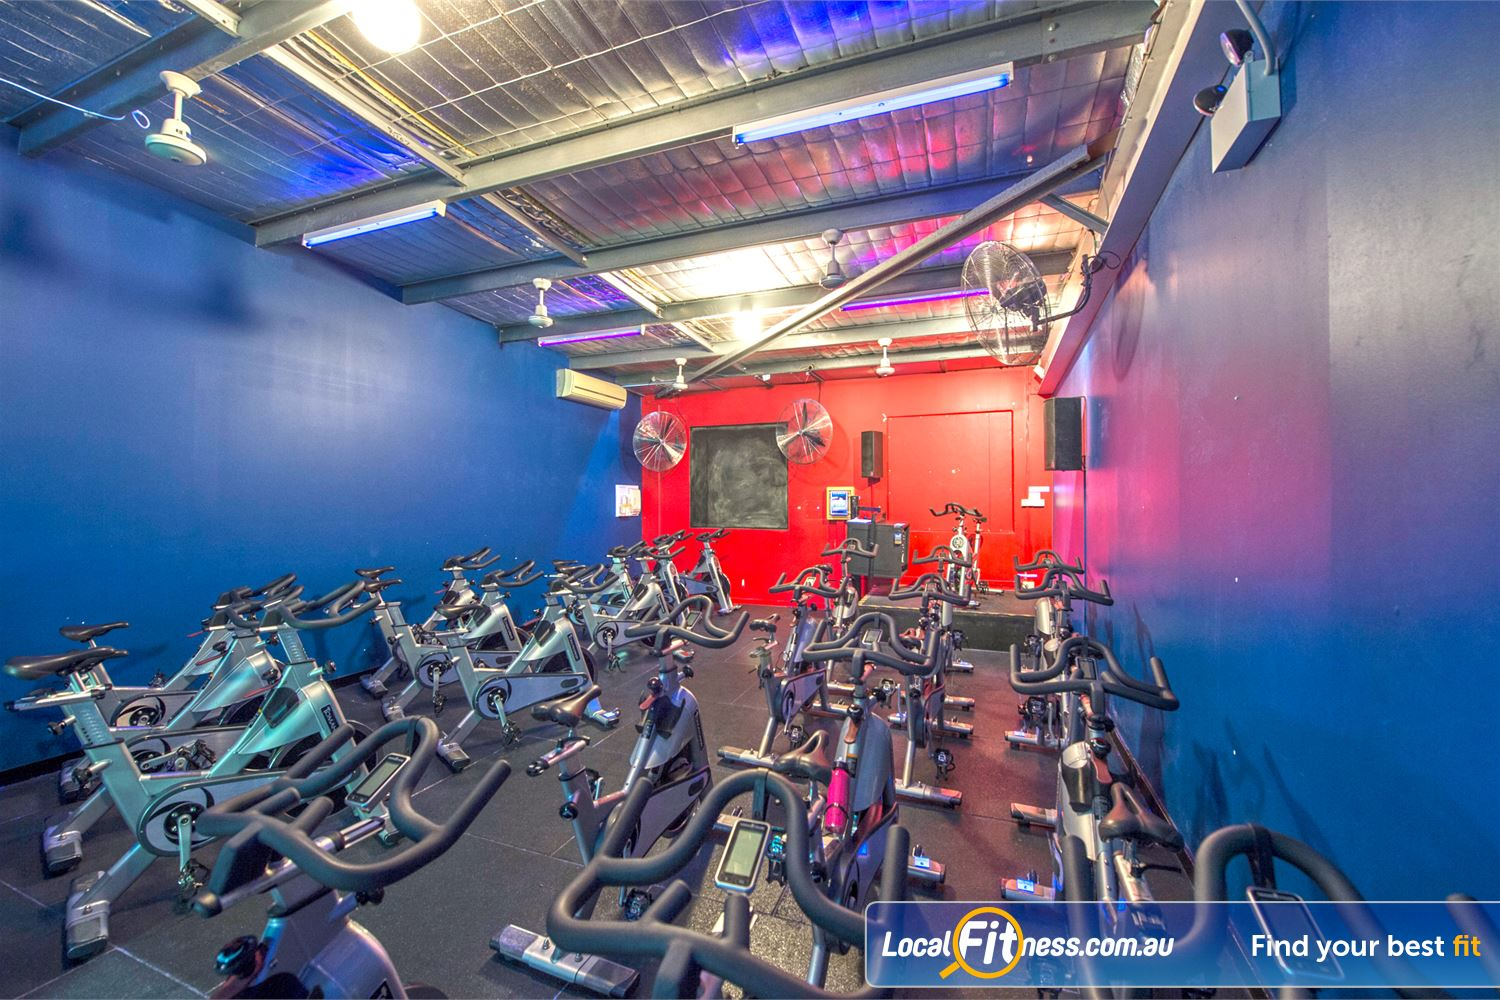 Goodlife Health Clubs Mount Lawley Dedicated Mount Lawley spin cycle studio.